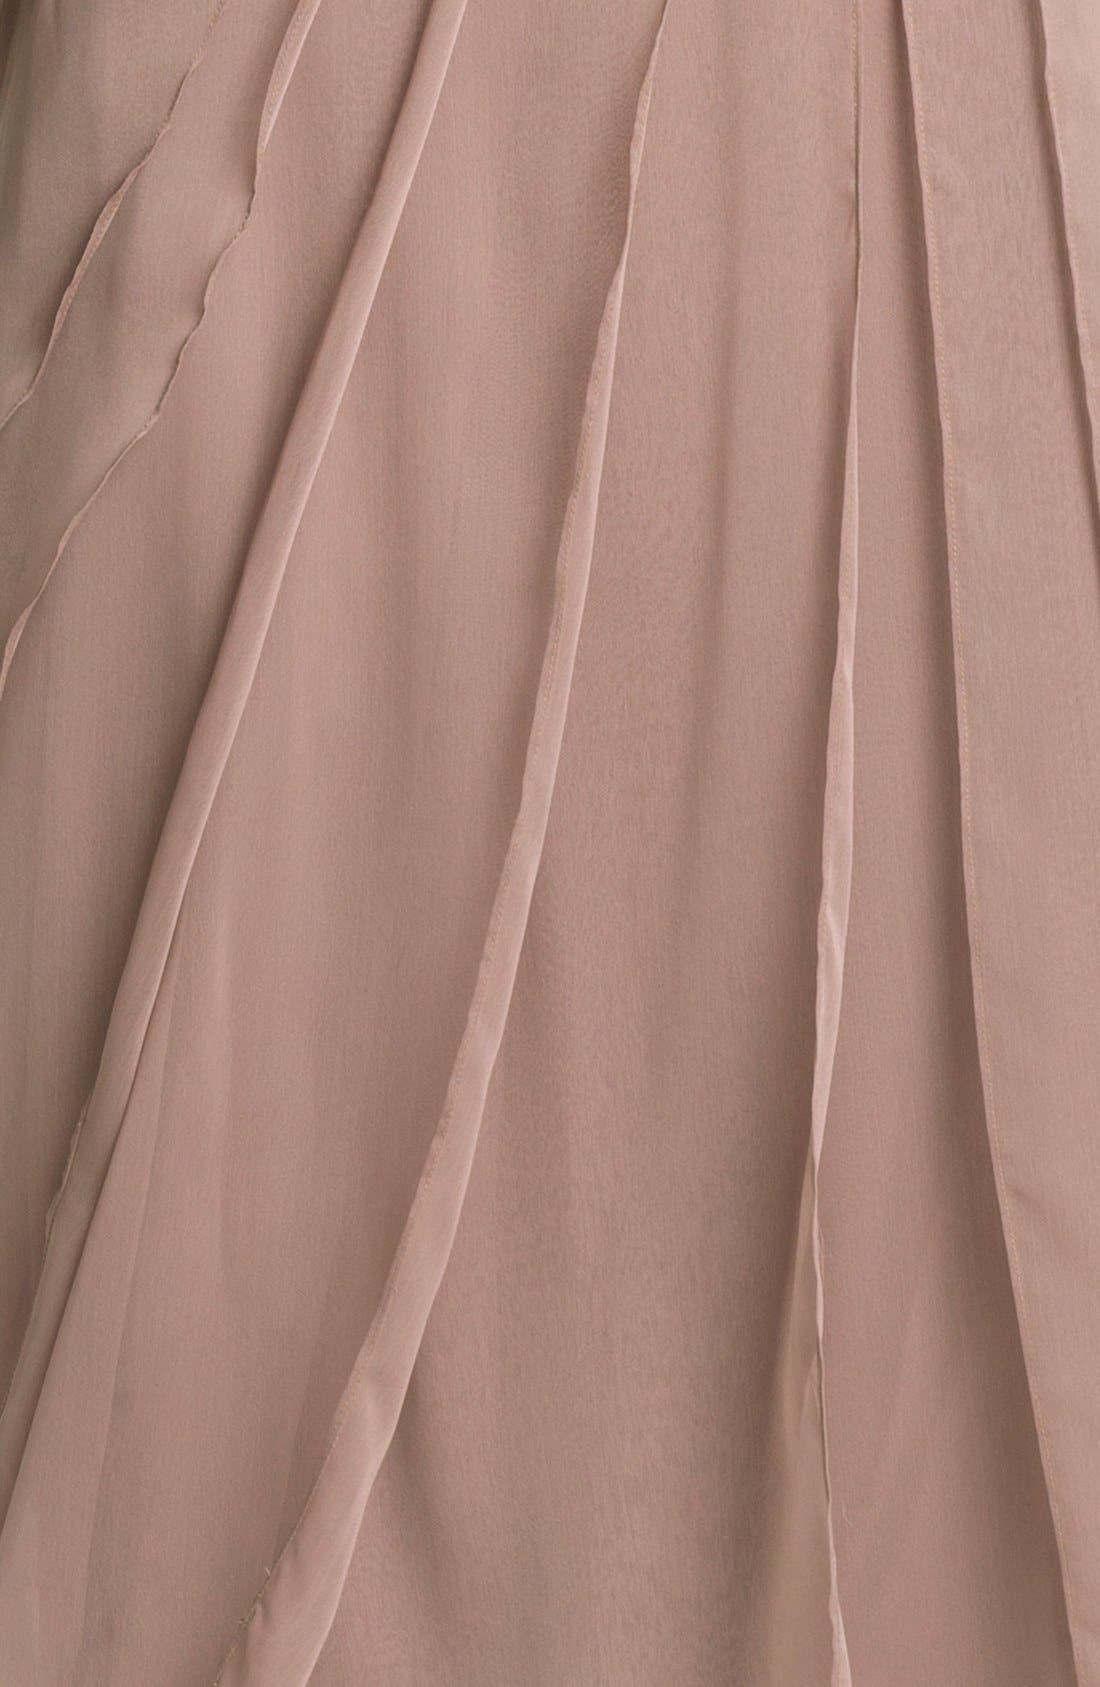 Alternate Image 3  - Adrianna Papell Layered Chiffon & Lace Gown